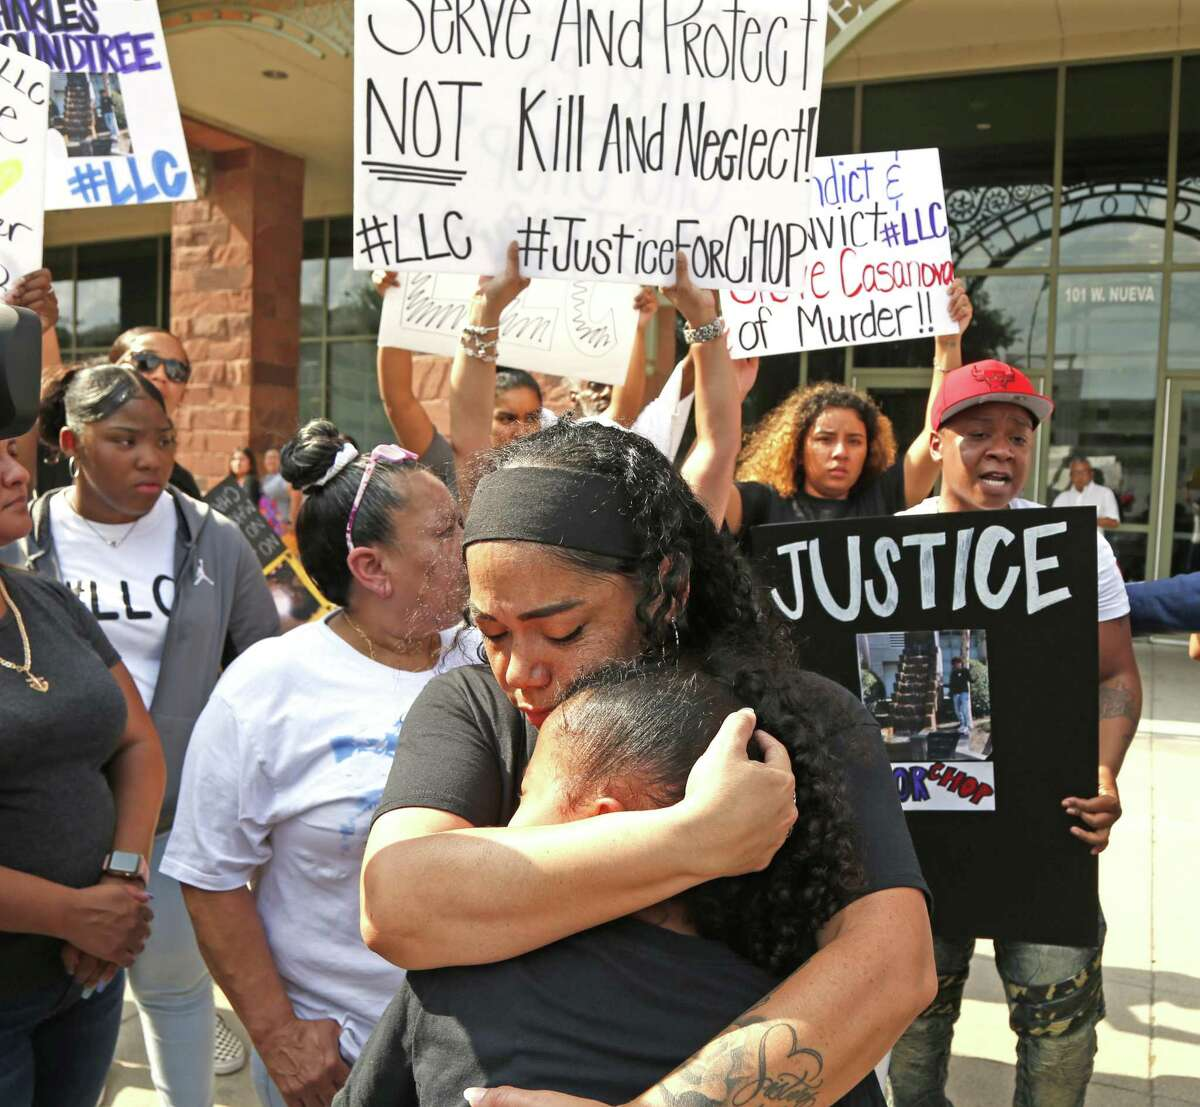 Bernice Roundtree comforts her daughter J'Kyah,8, after the news conference. Lawyer Daryl K. Washington and the family of Charles Roundtree Jr. are holding a news conference and rally today in front of the Bexar County District Attorney's officeWednesday, May 29, 2019